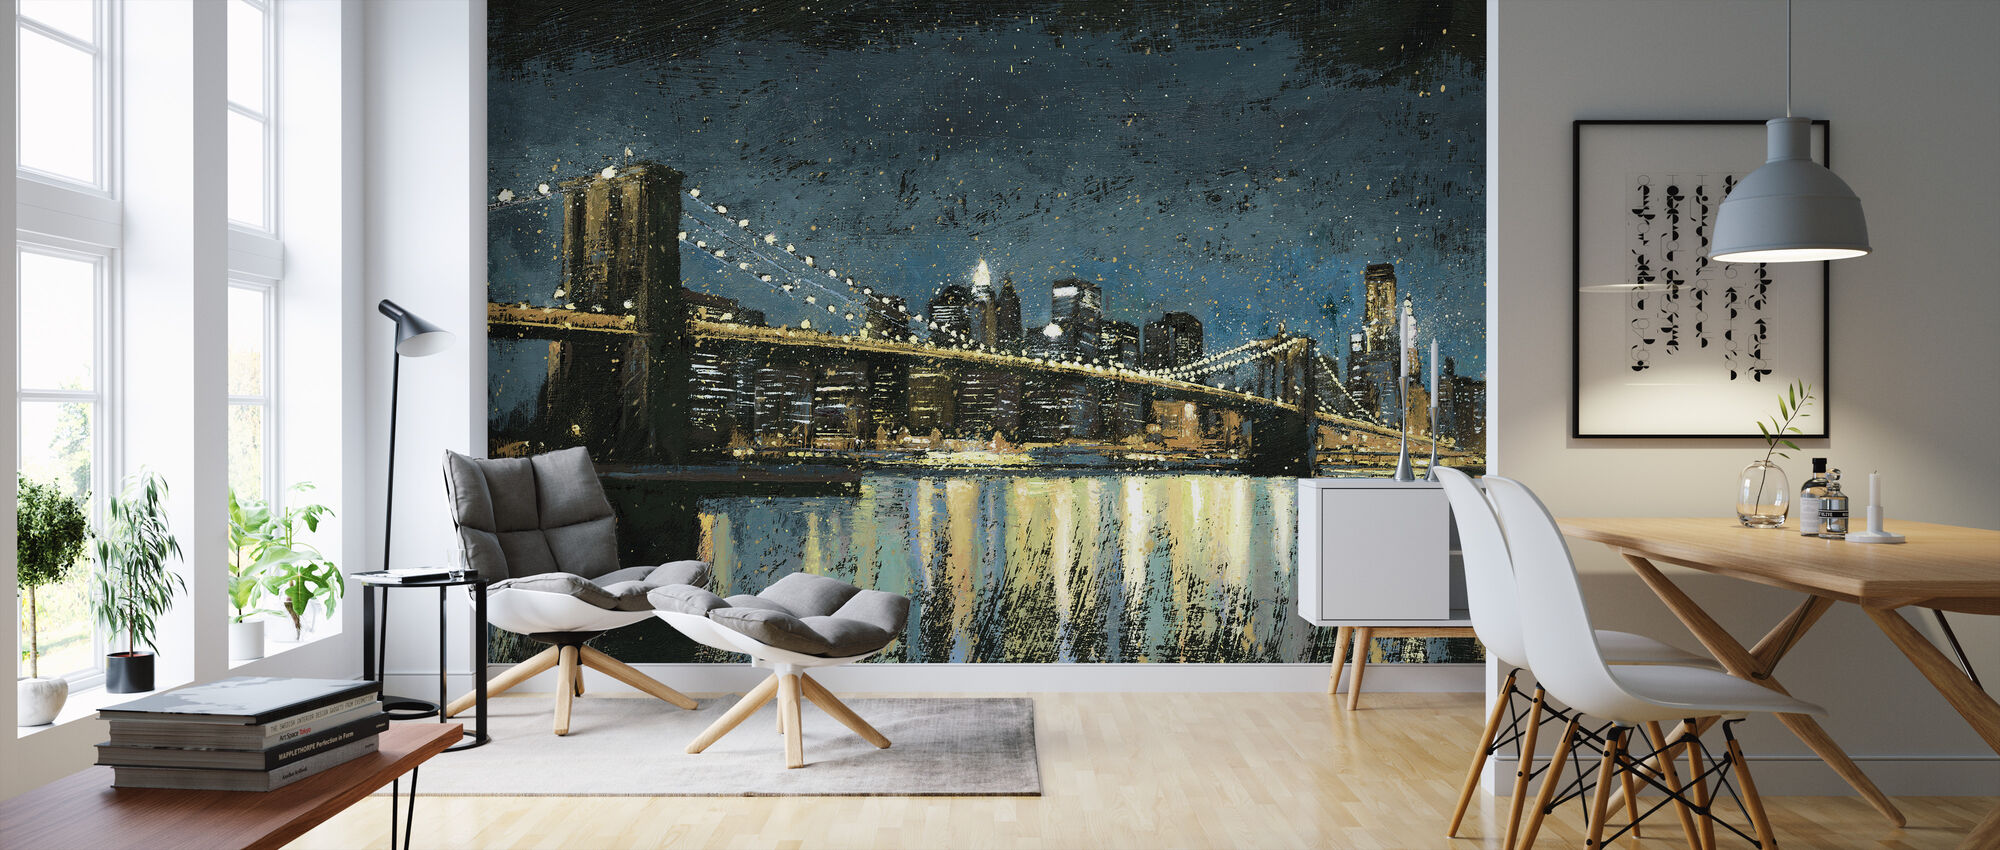 Bright City Lights Blauw - Behang - Woonkamer